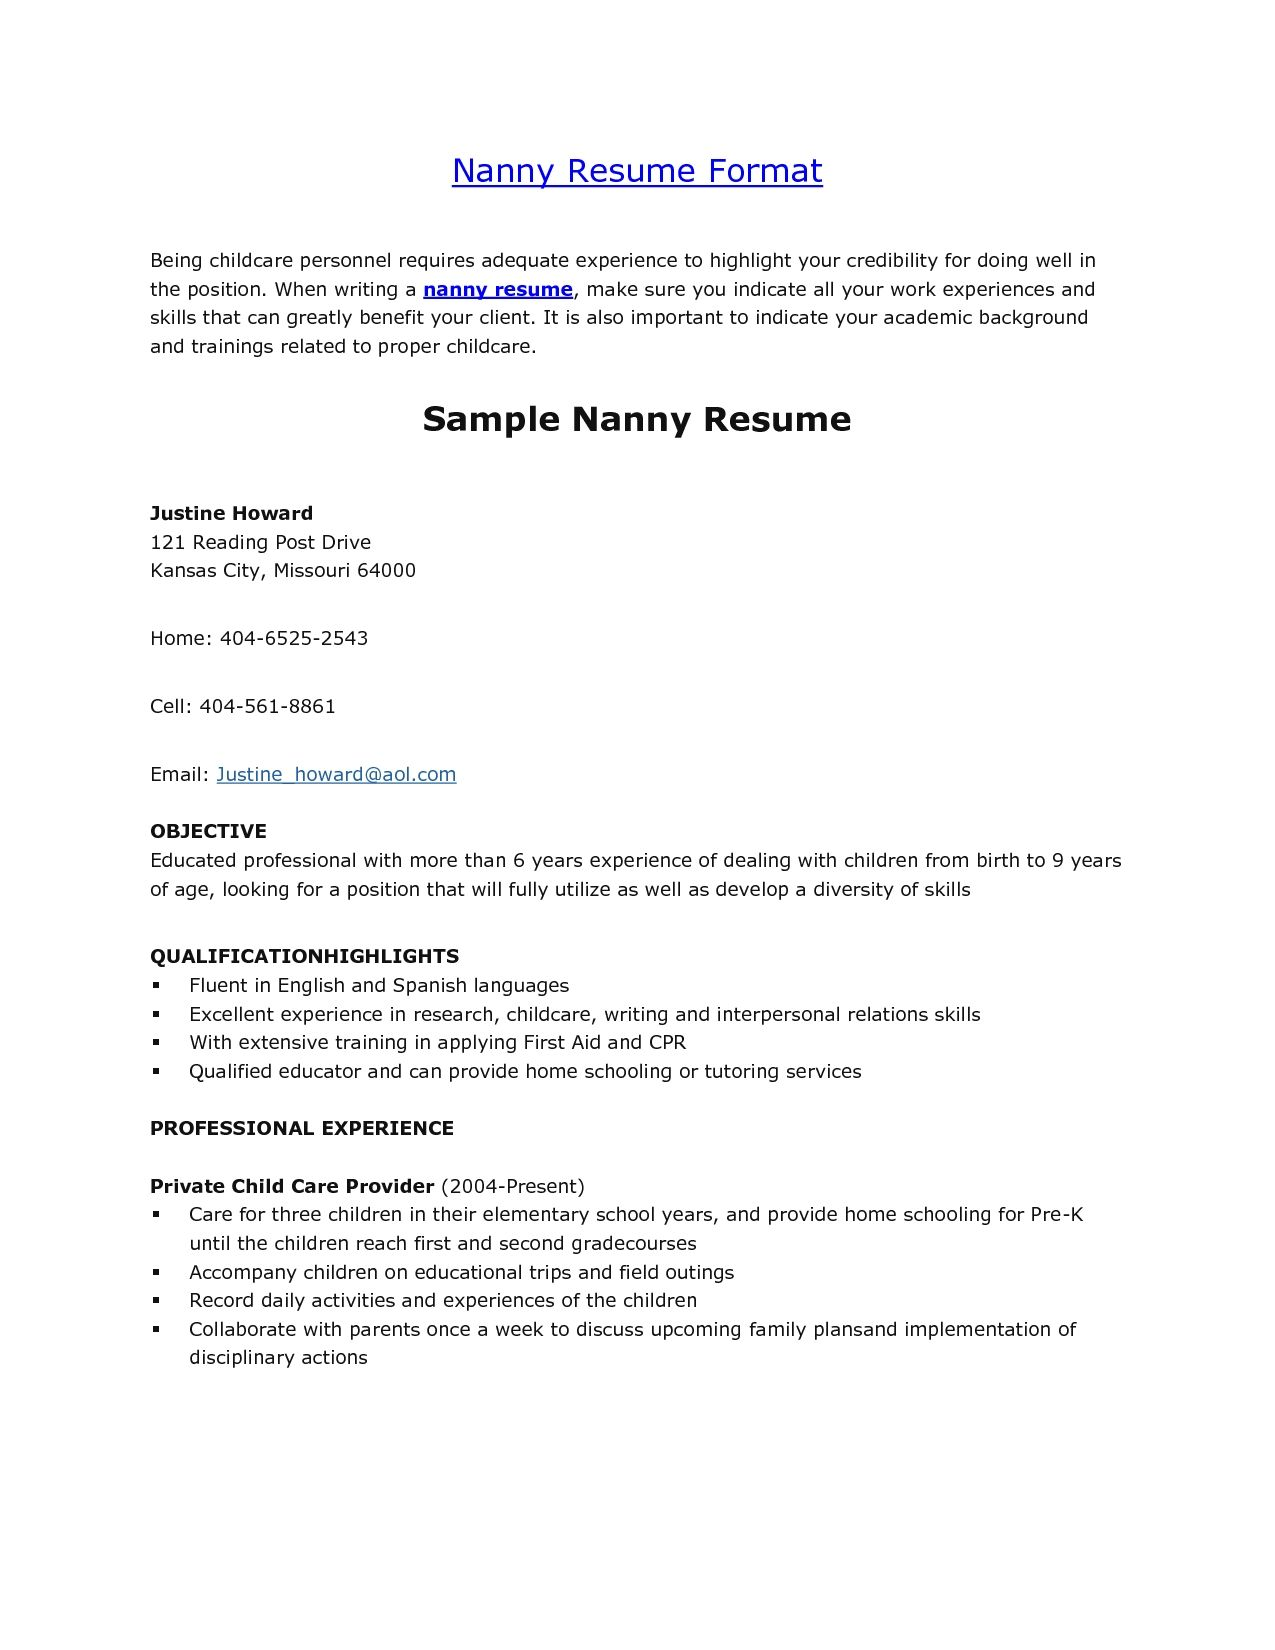 Resume Letter Template What To Put On A Cover Letter For Resumecompares Linux